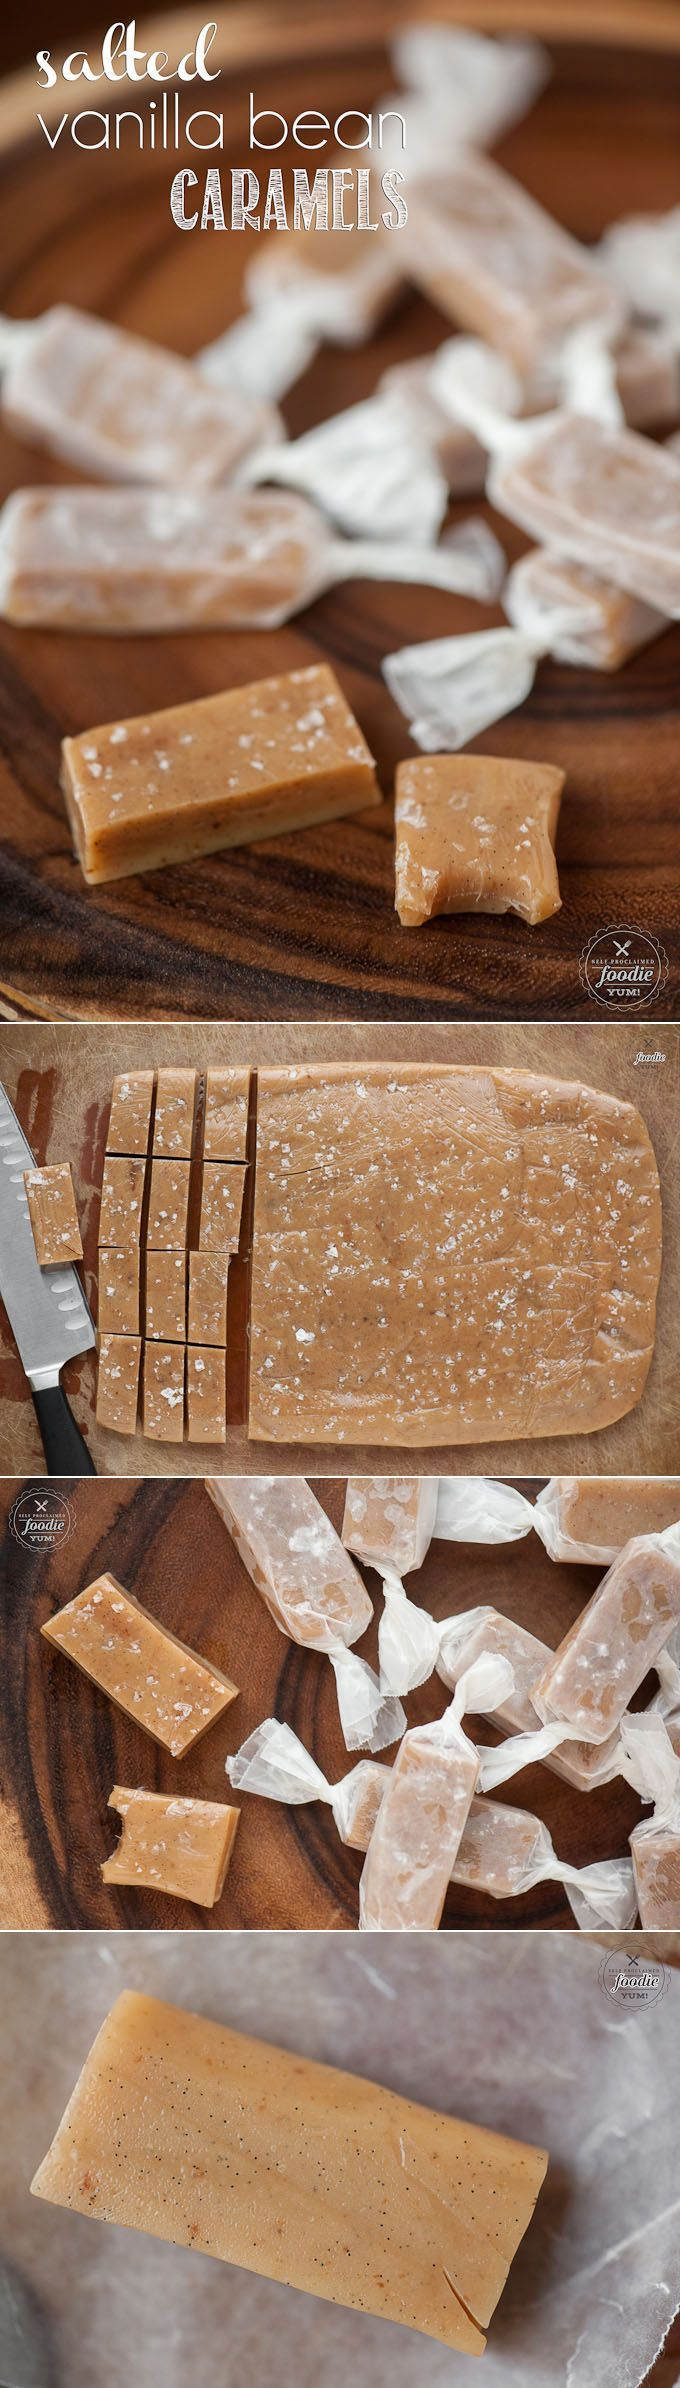 Salted Vanilla Bean Caramels - Made with the goodness of browned butter and lots of vanilla beans, are the perfect holiday gift!